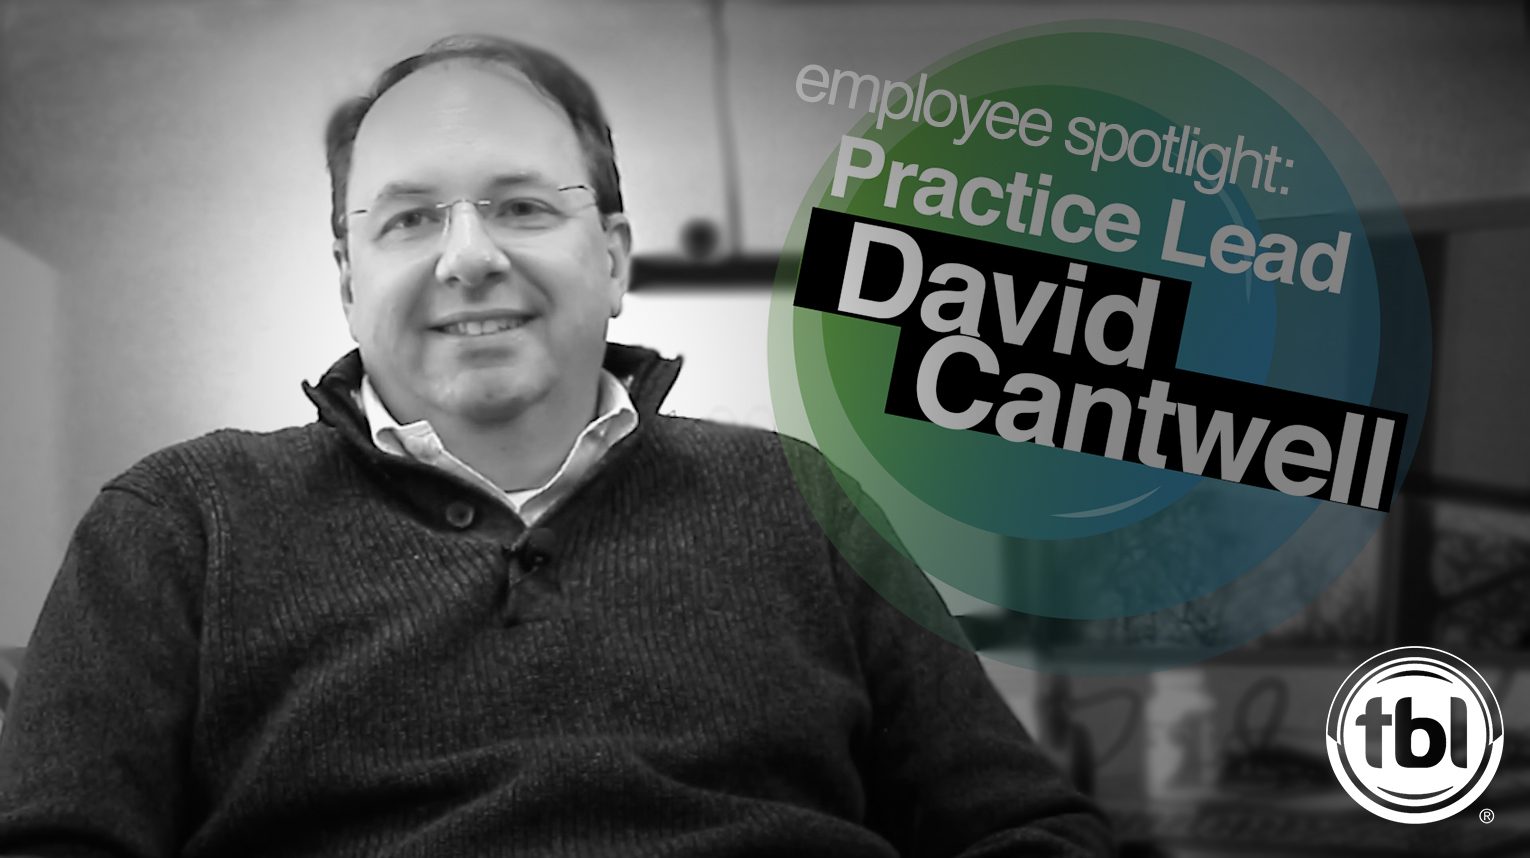 Employee Spotlight: Collaboration Practice Lead: David Cantwell